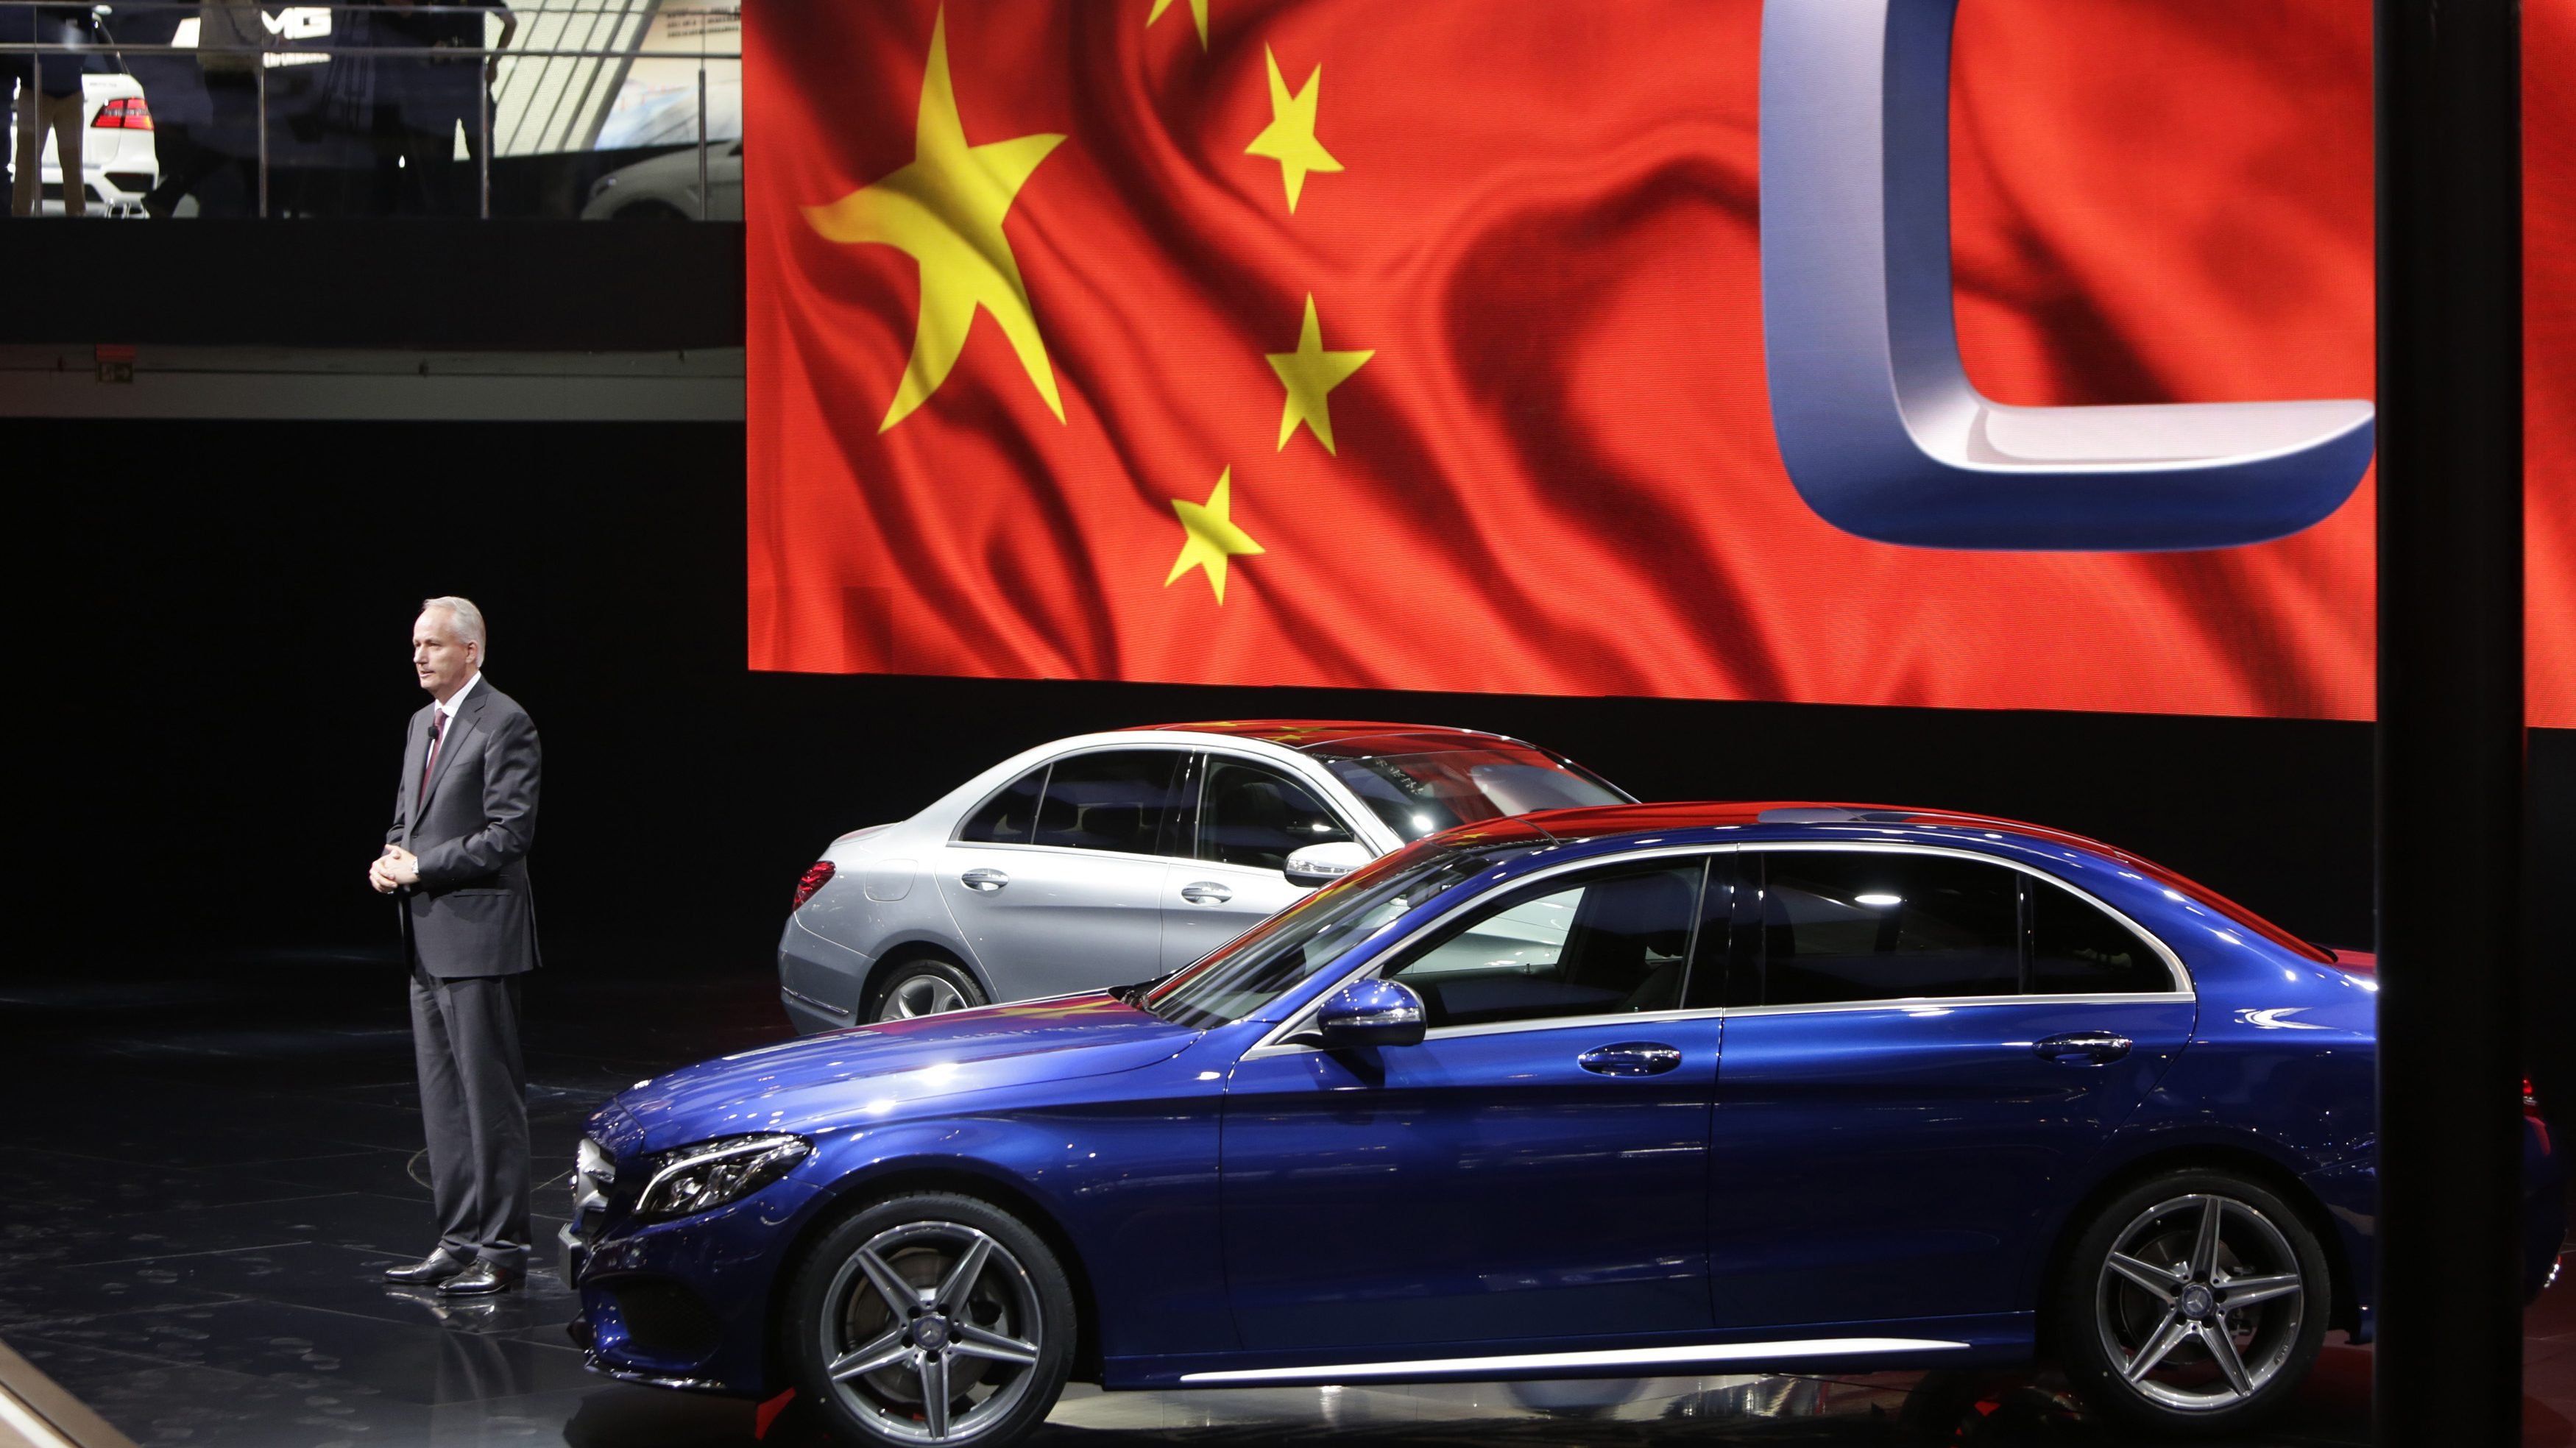 A Daimler board member presents a new car in front of a projection of a Chinese flag.